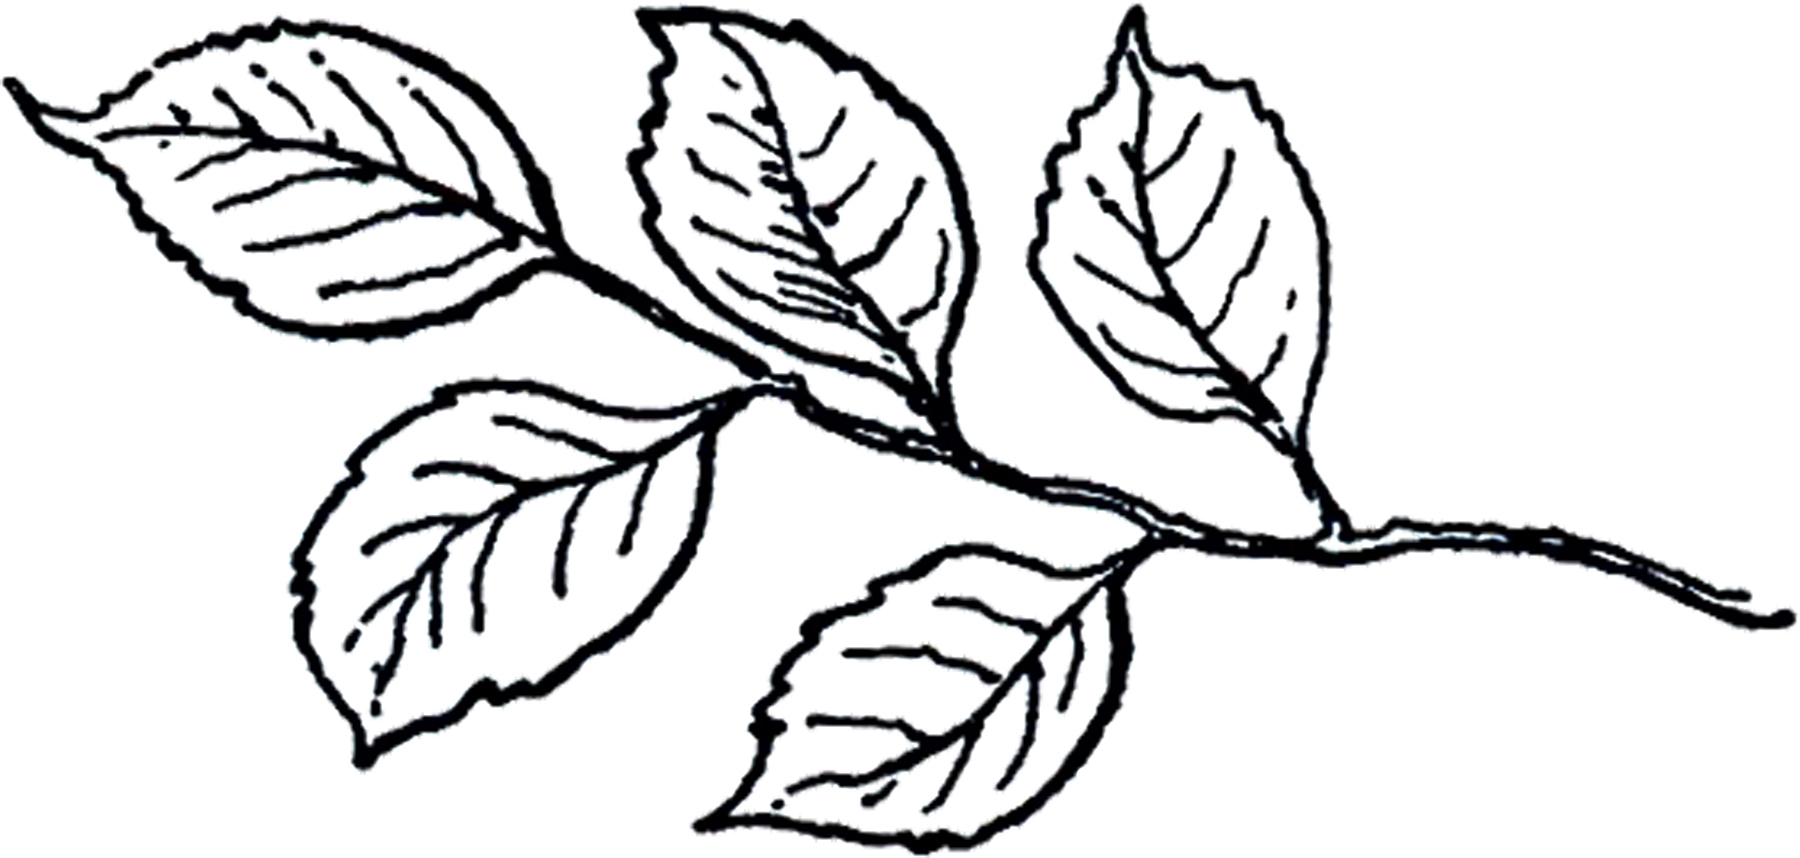 Vintage Line Art Leaves! - The Graphics Fairy